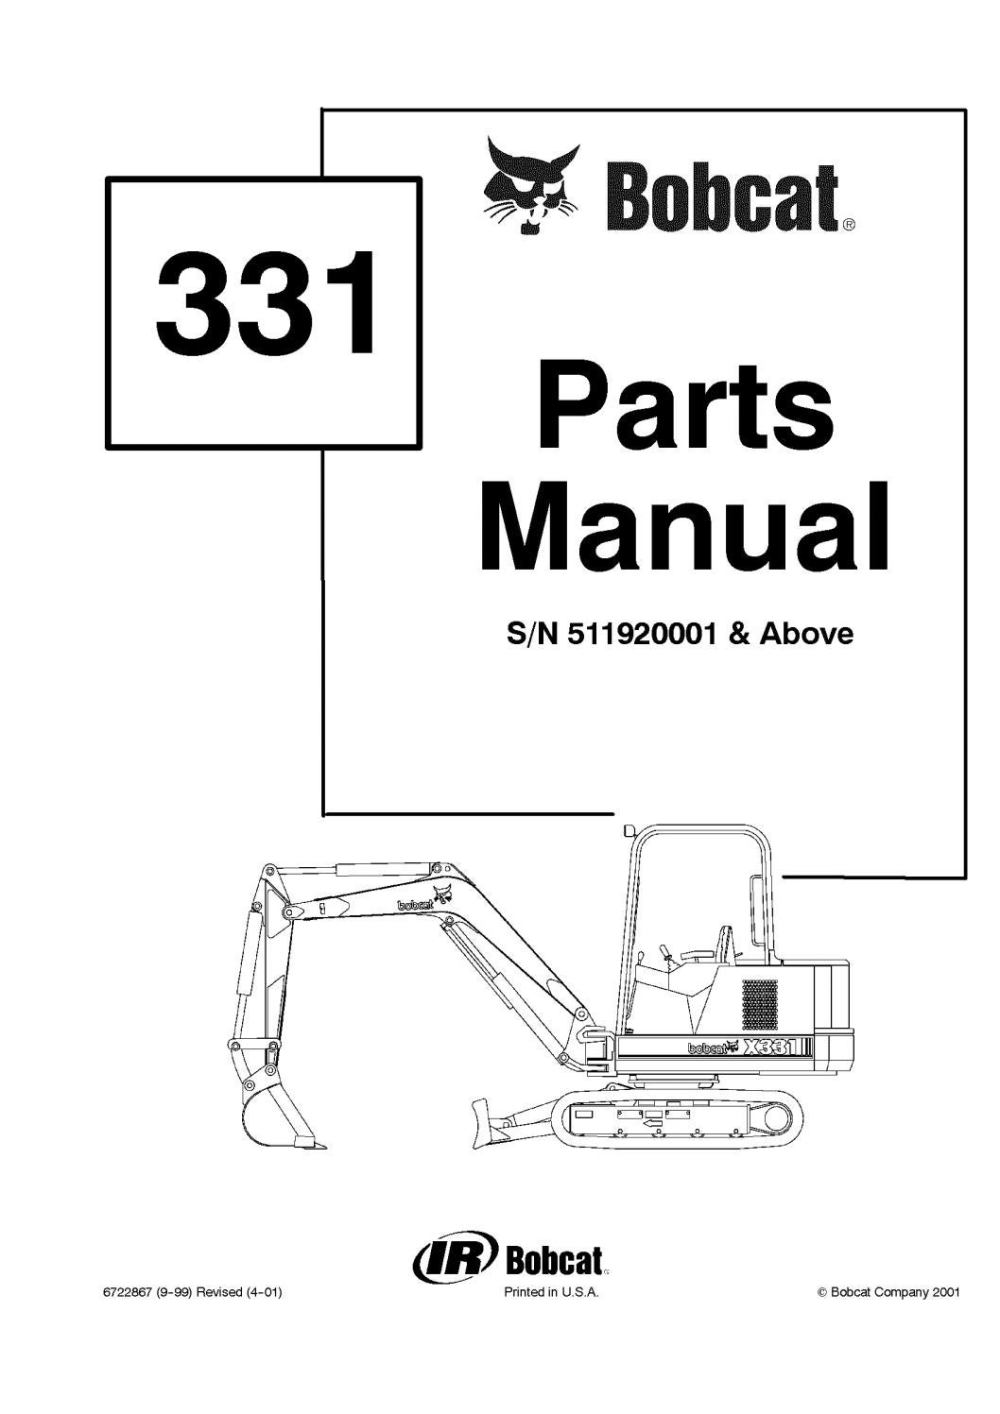 medium resolution of bobcat 331 parts diagram wiring diagram structurebobcat 331 parts diagram wiring diagram bobcat 331 excavator parts